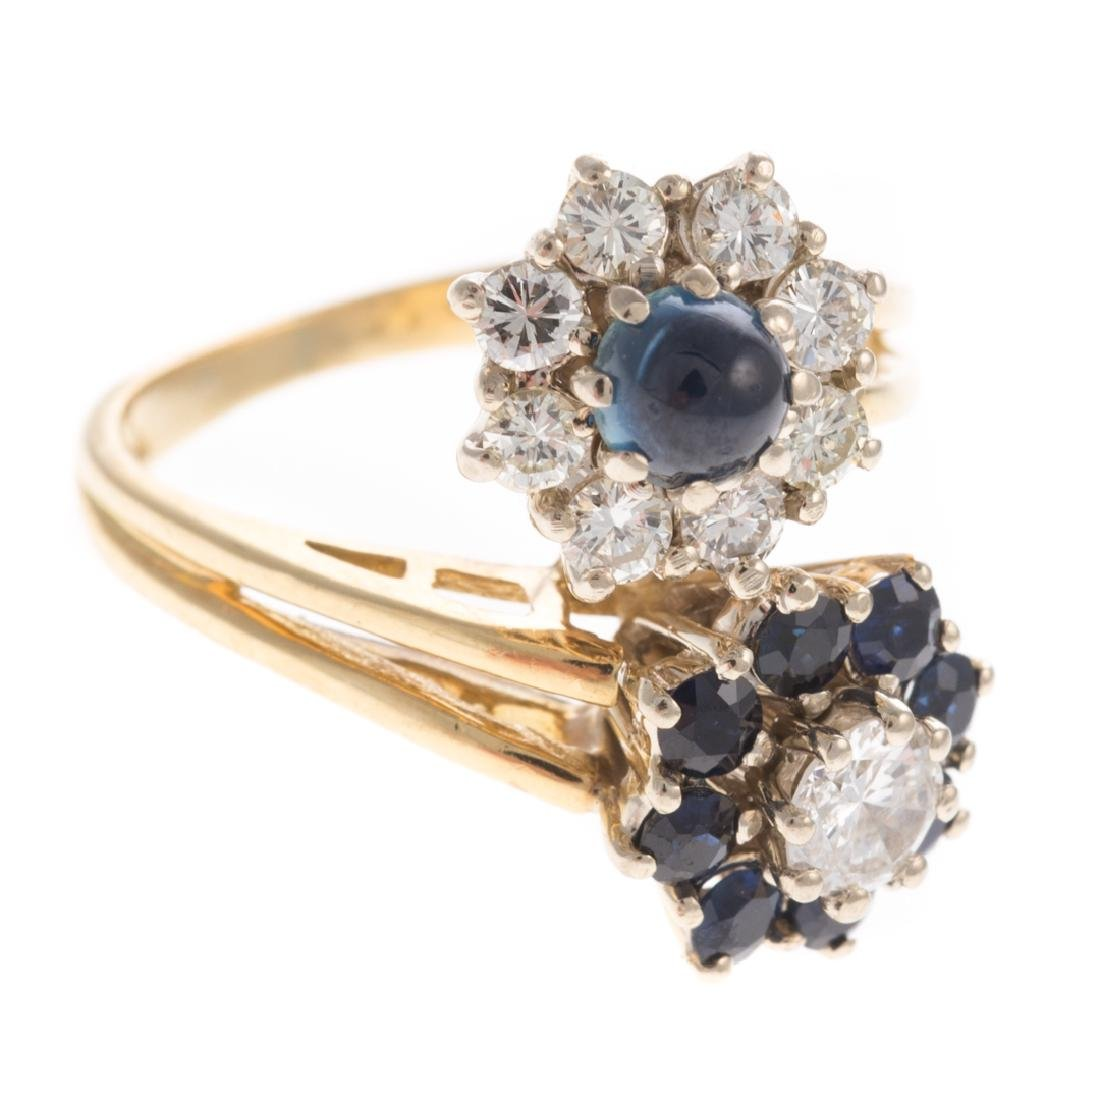 A Lady's Sapphire & Diamond Ring in 18K - 5